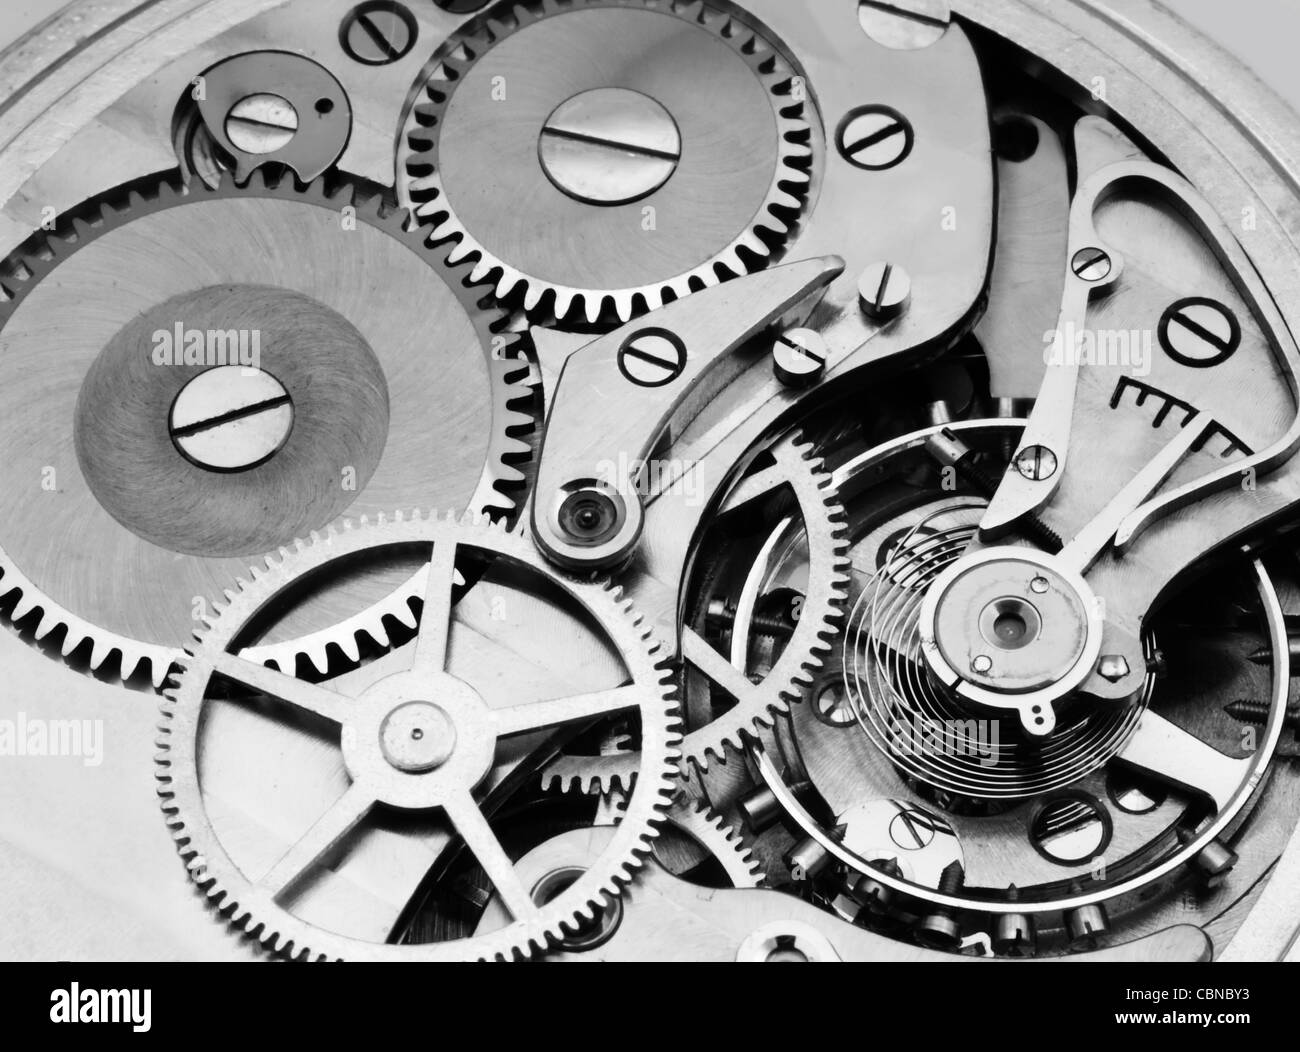 mechanism of a pocket watch timepiece showing  gears and balance wheel - Stock Image